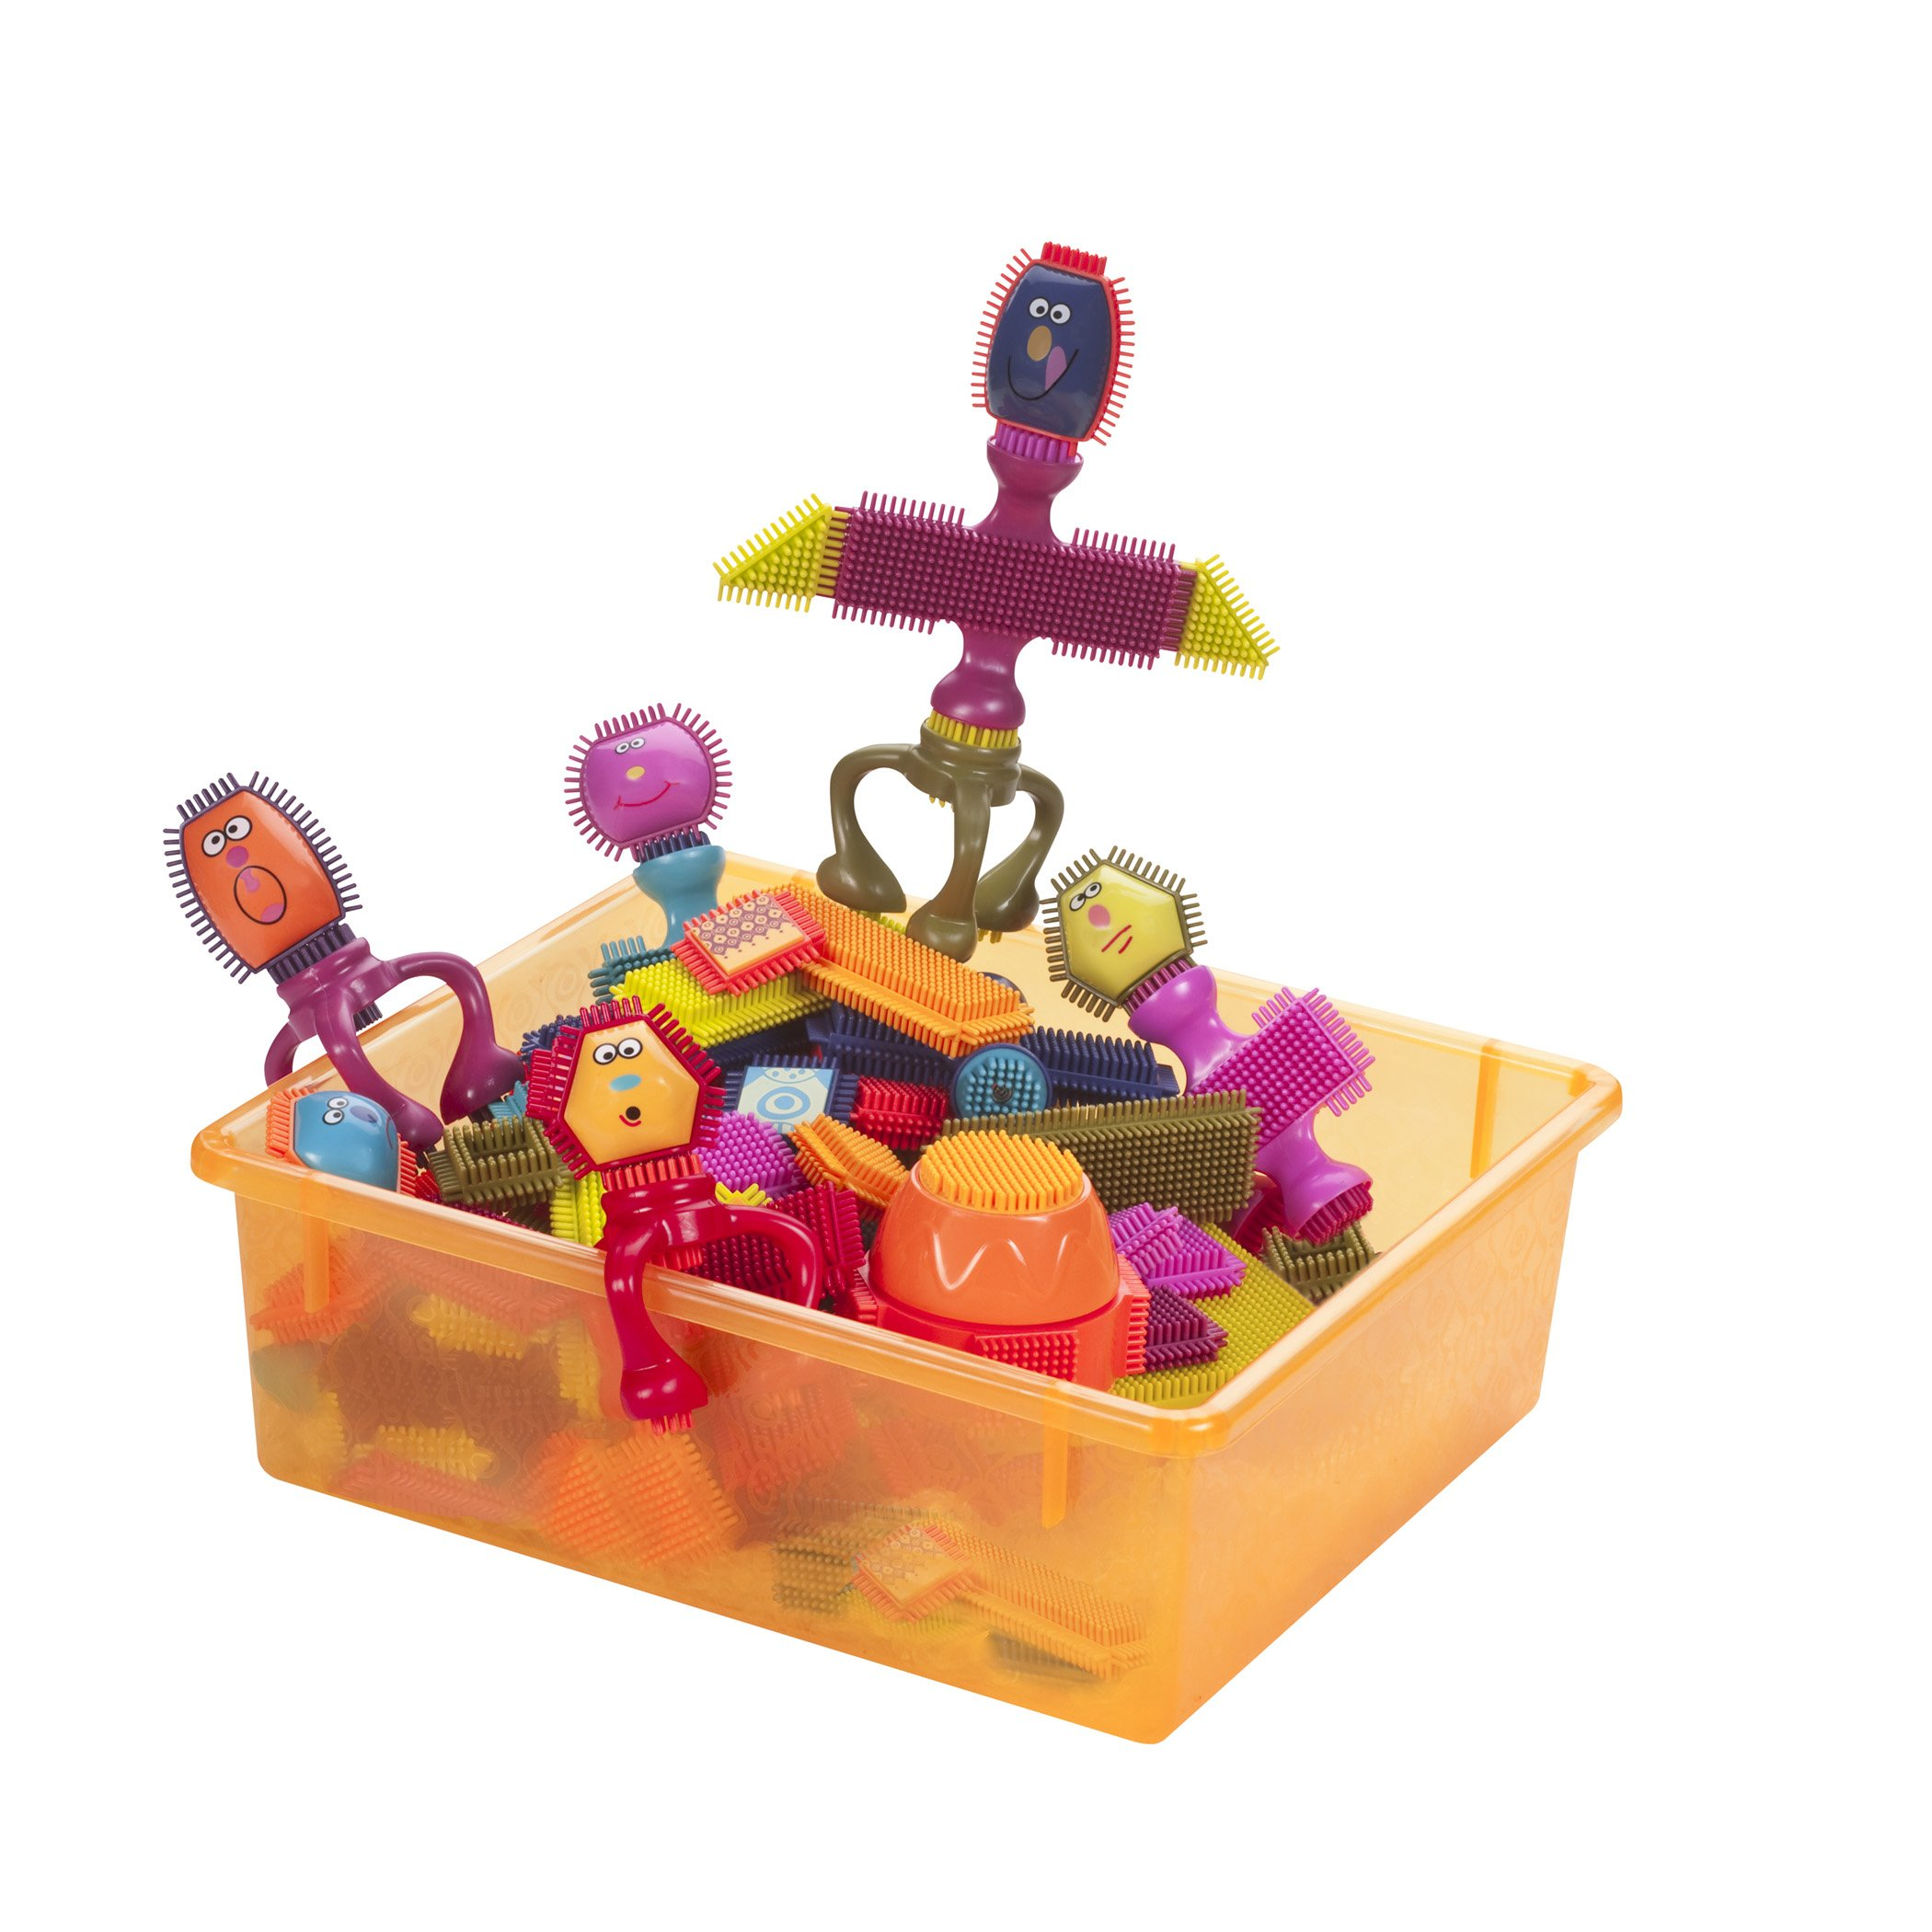 B Toys By Battat Bristle Block Spinaroos The Official Bristle